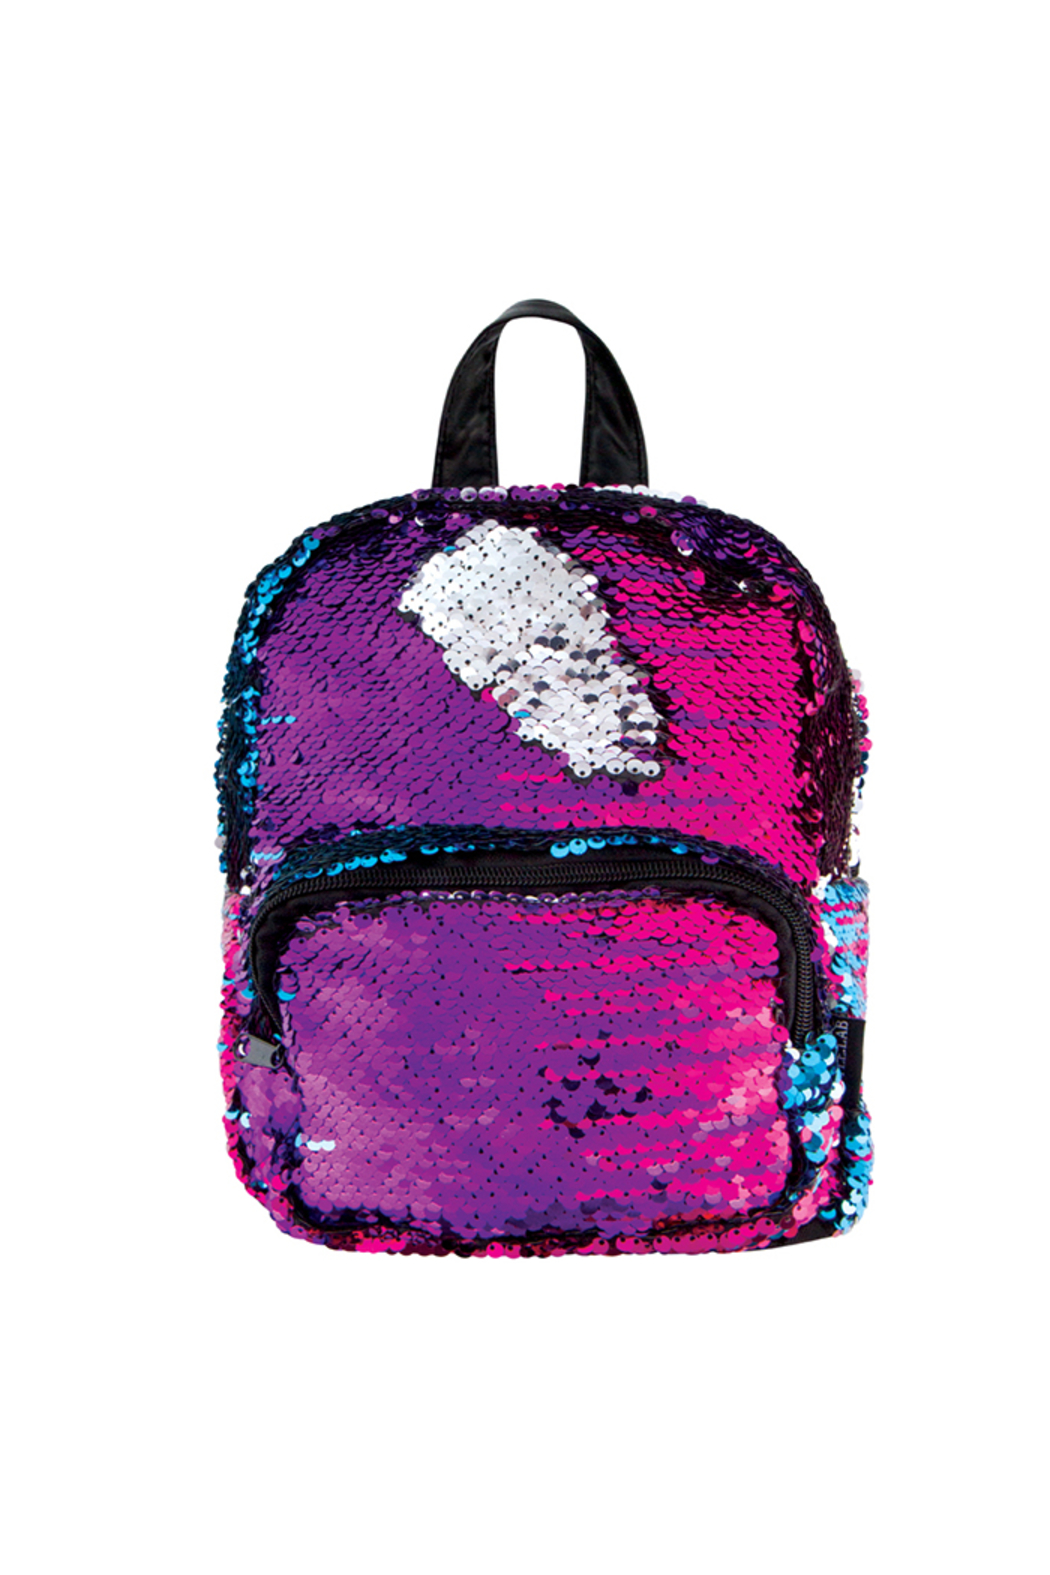 Fashion Angels S. Lab Magic Sequin Mini Backpack Multi Sliver - Main Image